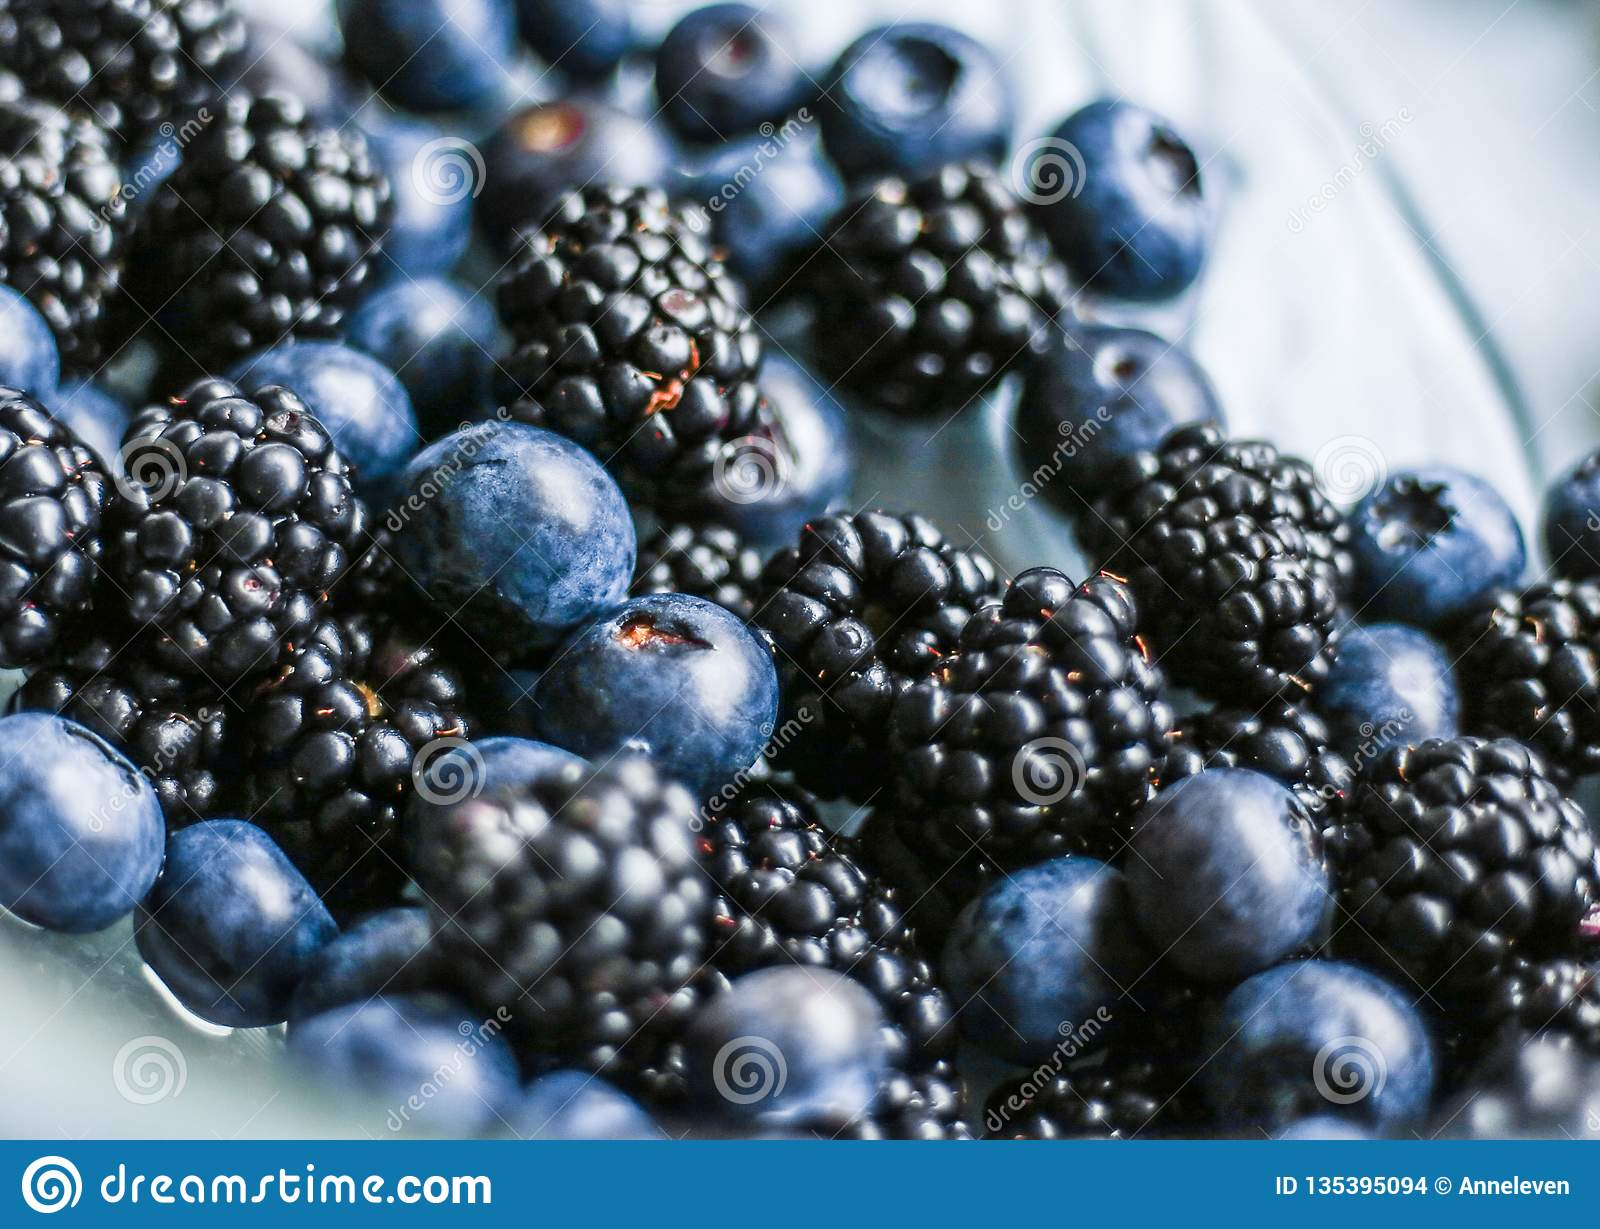 bluberries and blackberries - fresh fruits and healthy eating styled concept